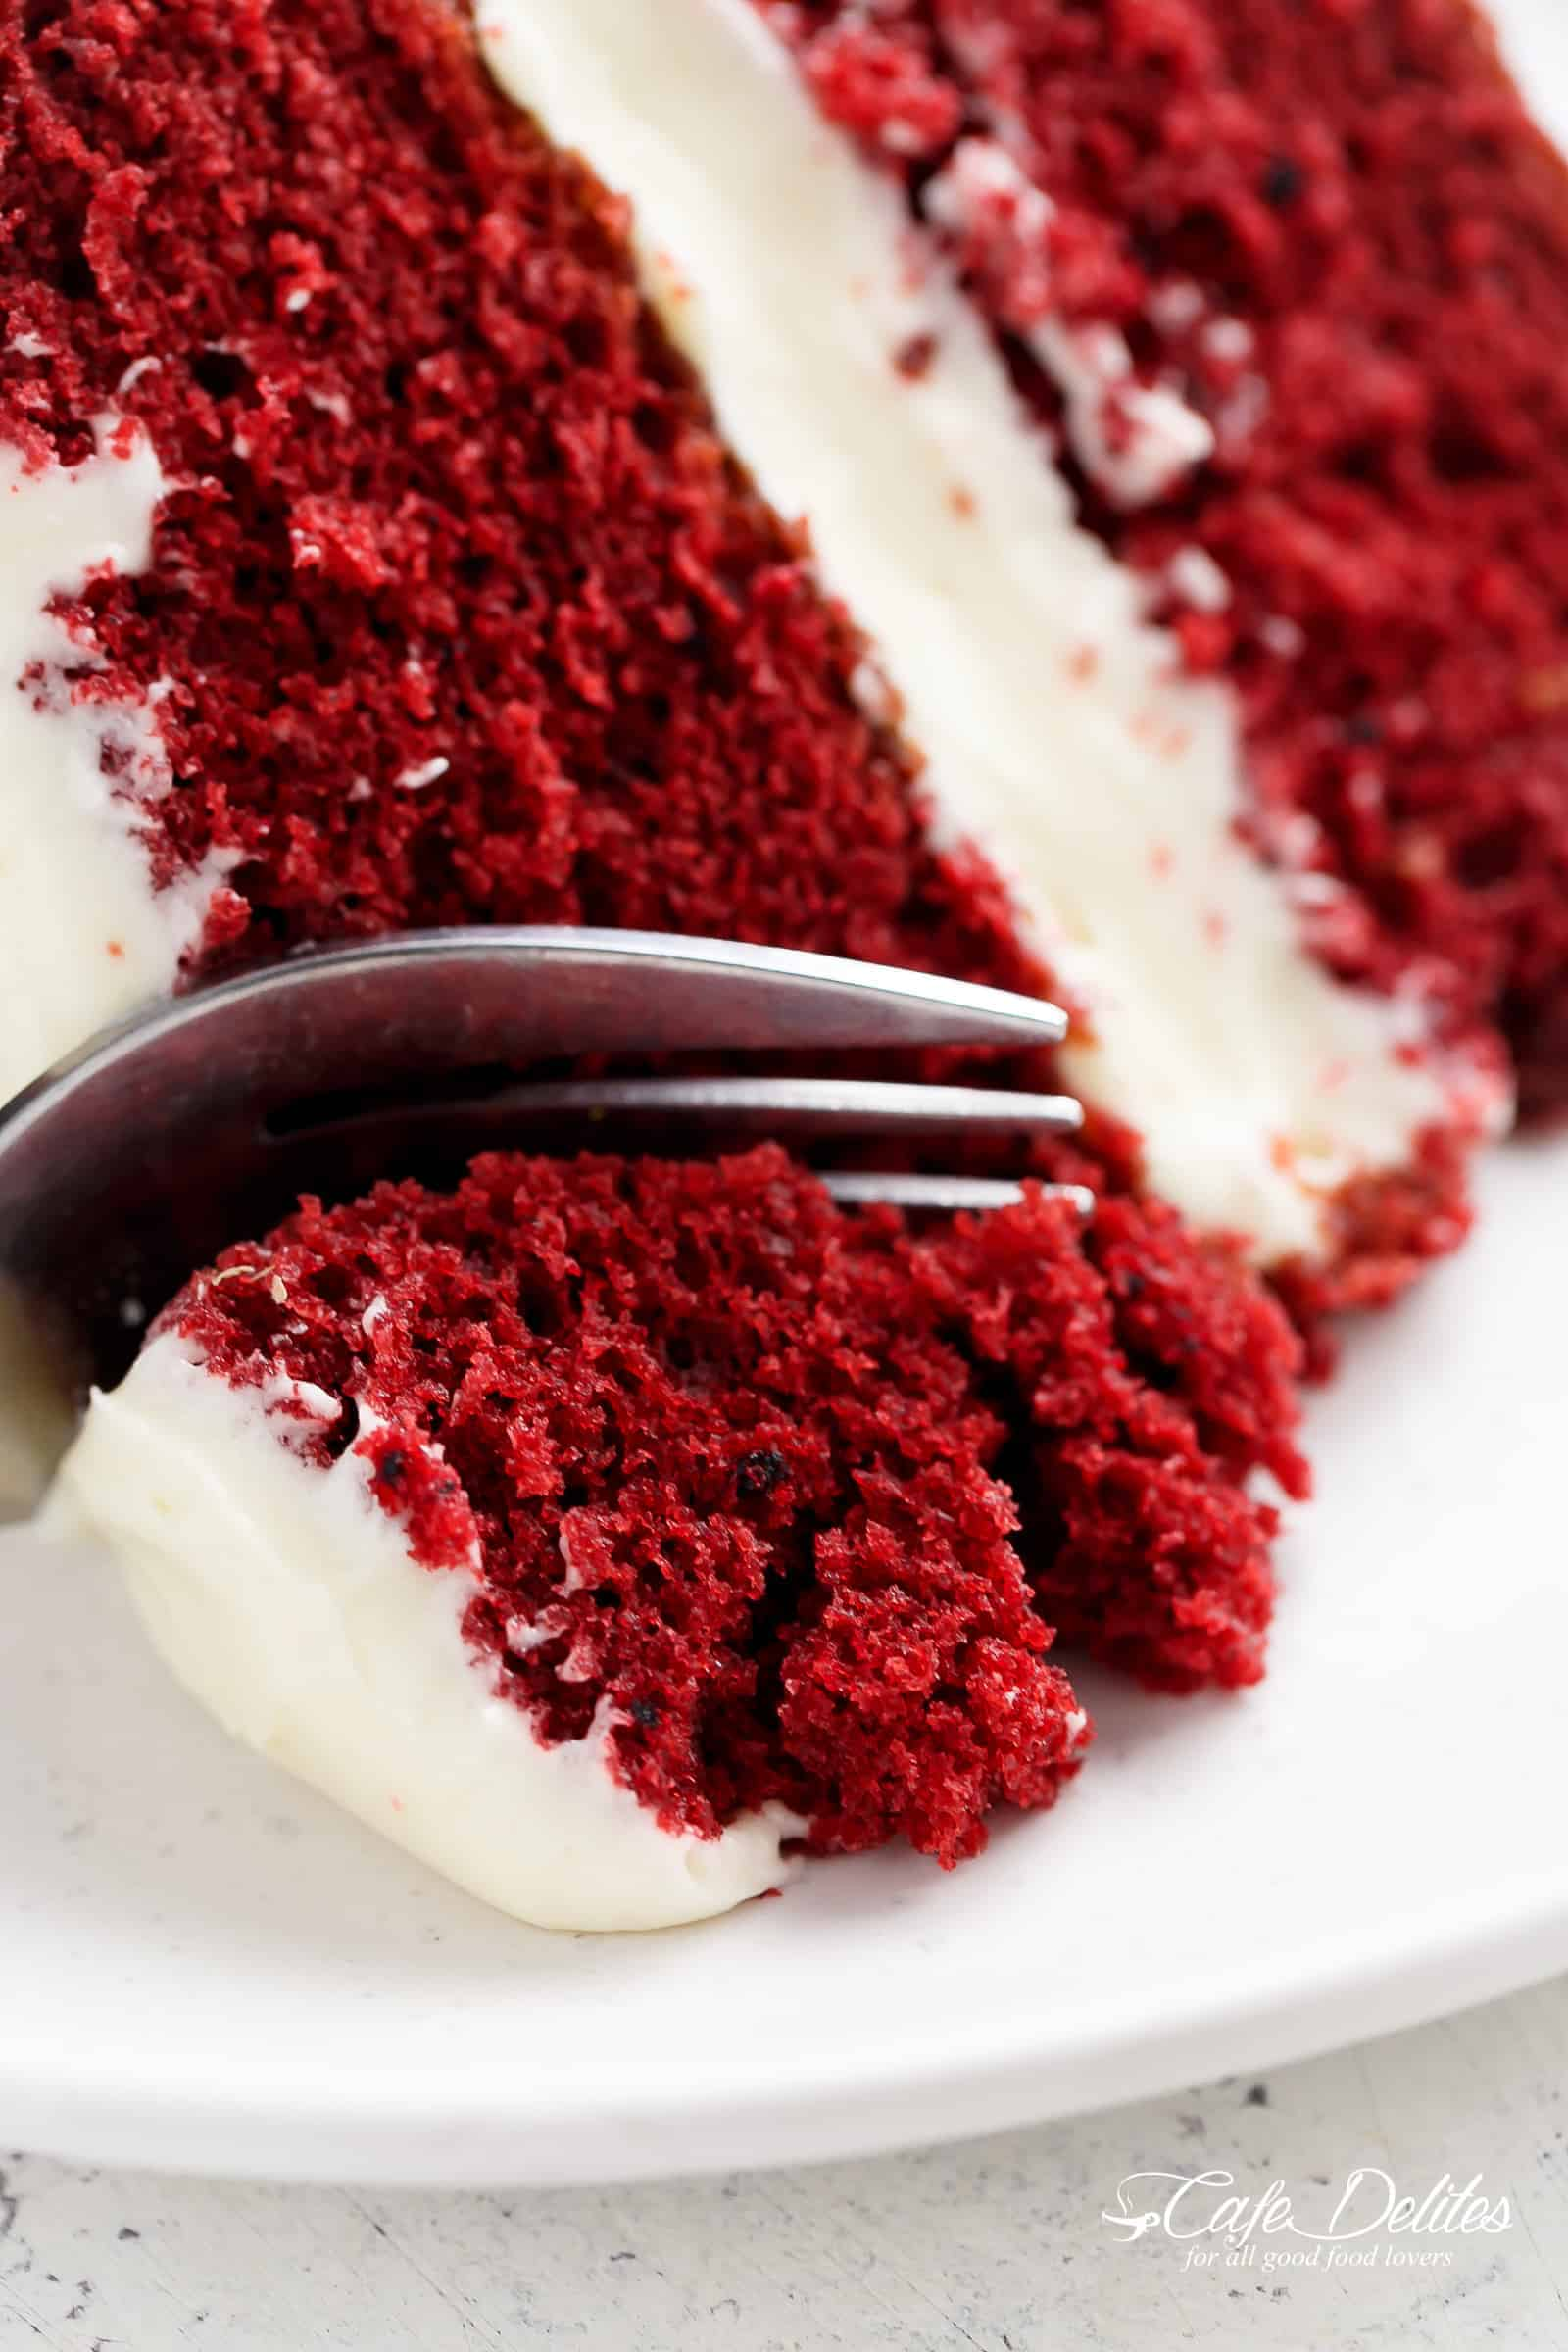 Best Red Velvet Cake Cafe Delites